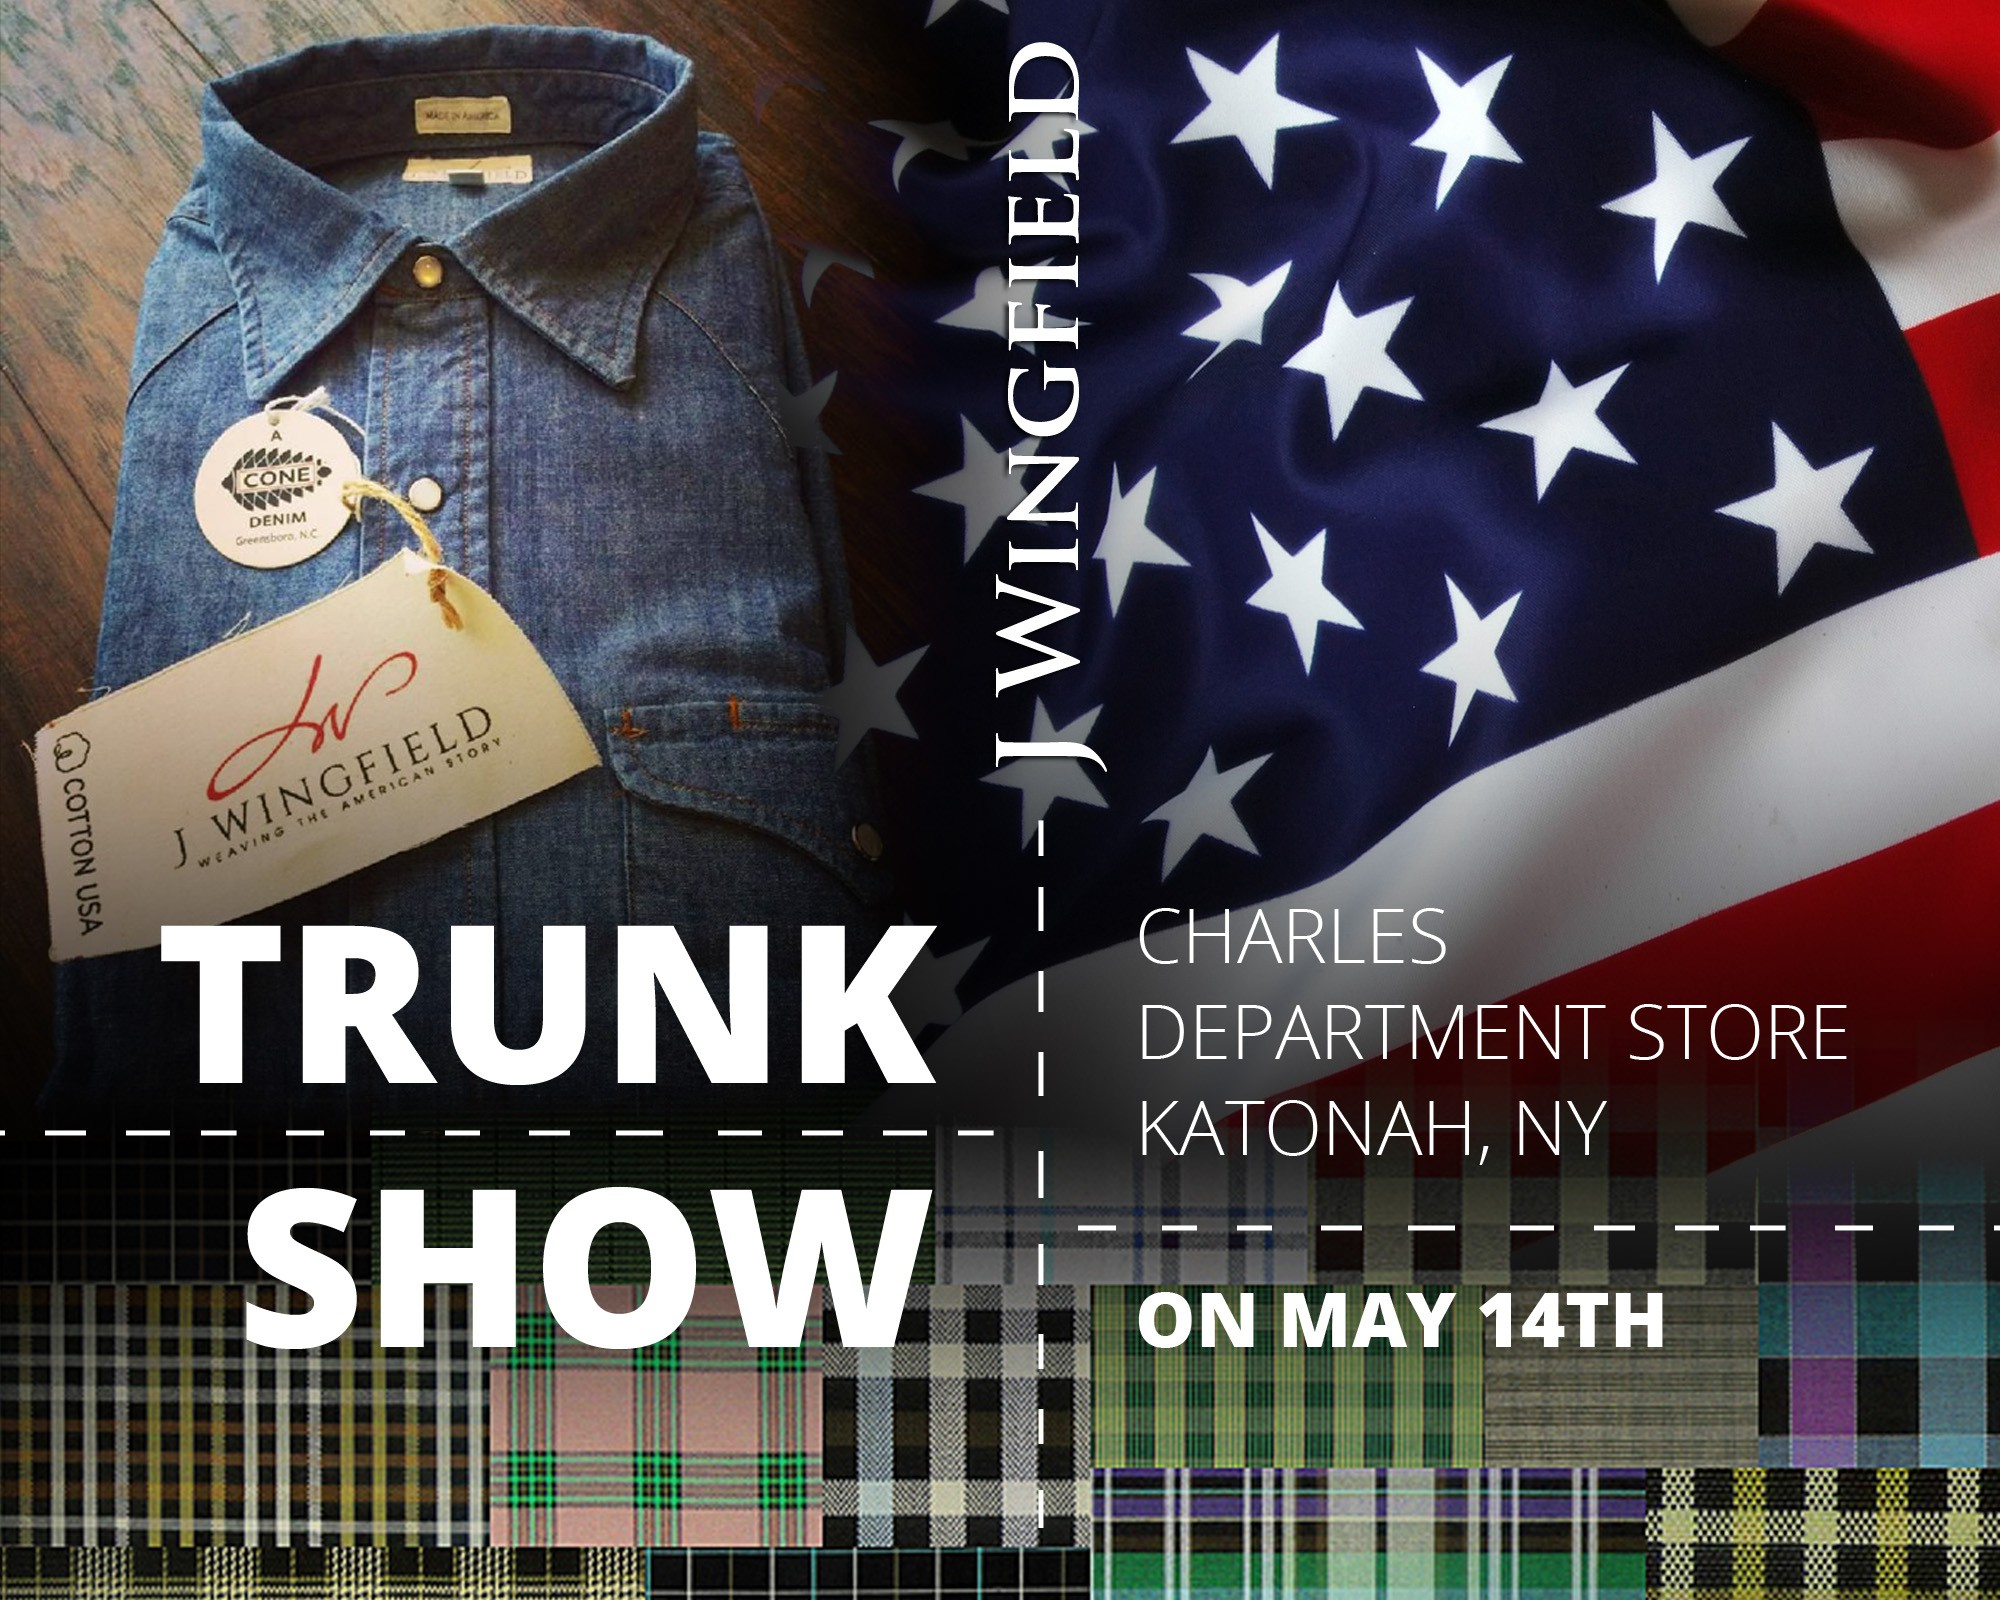 J Wingfield - Trunk Show Teaser Images